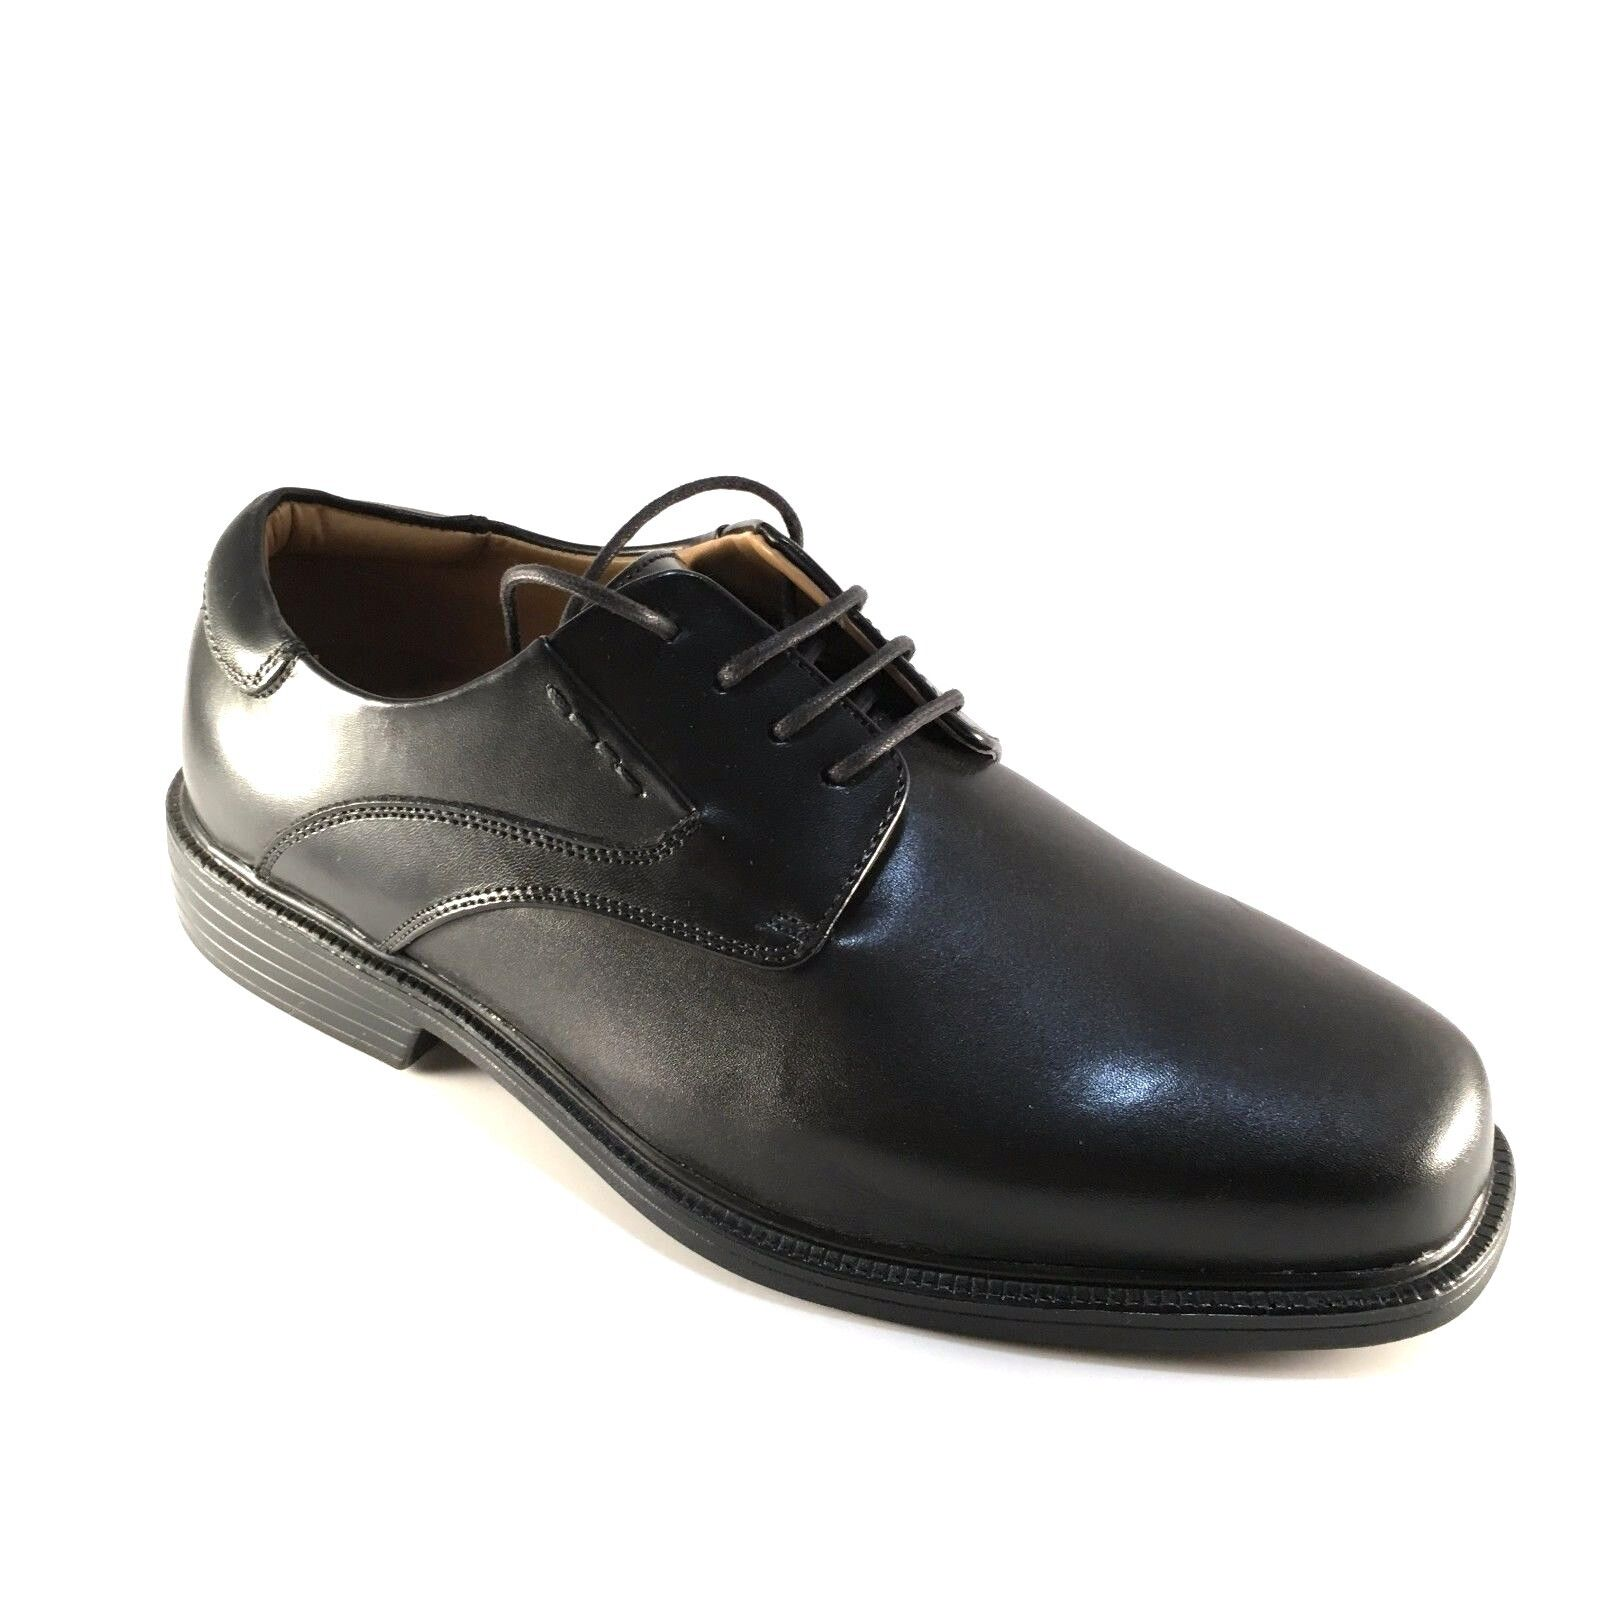 La Milano A1719 Black Leather Comfort Lace Up Extra Wide (EEE) Men's Dress Shoes